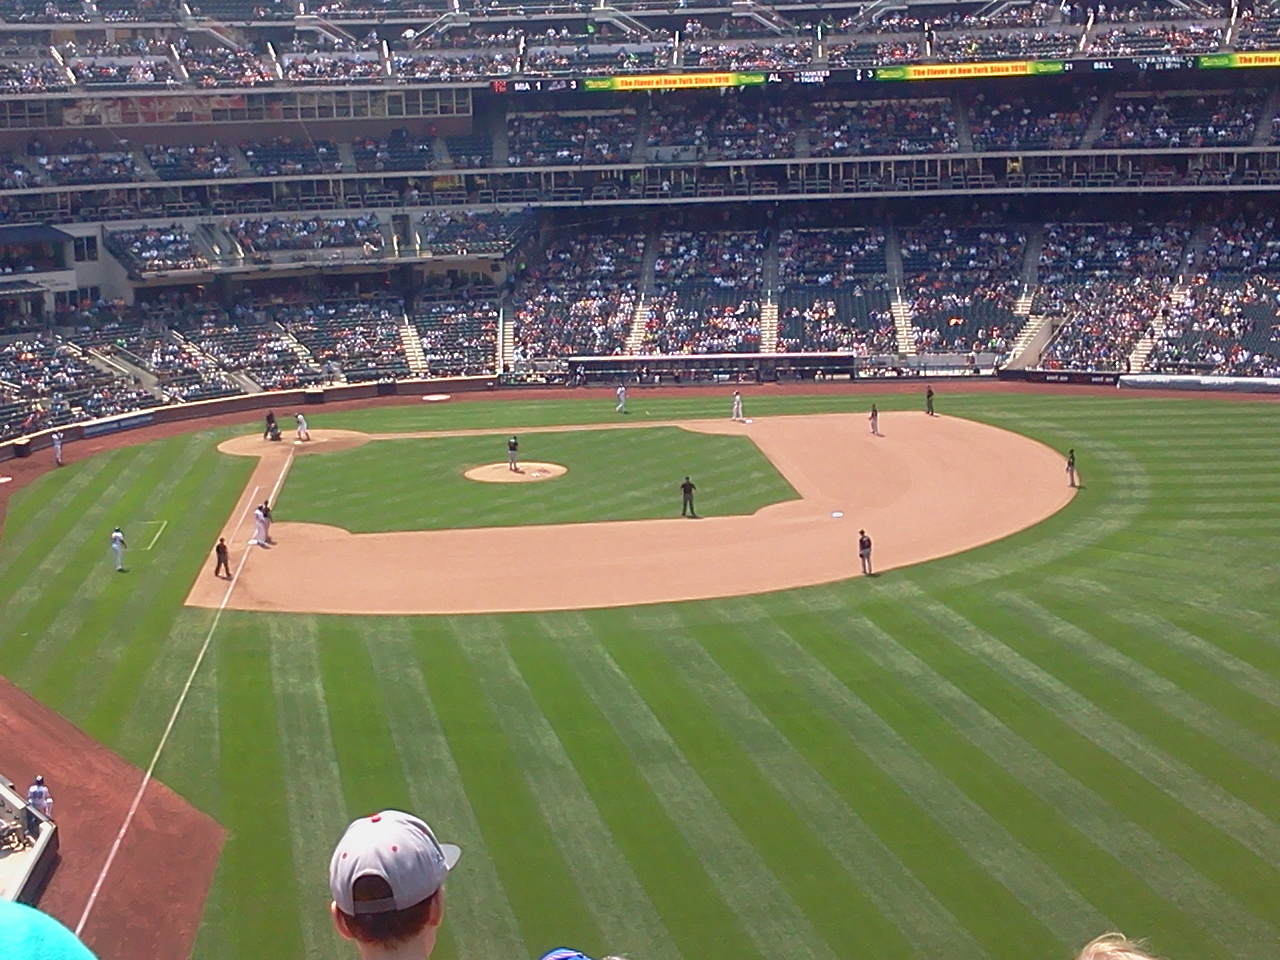 Seat View for Citi Field Section 302, Row 2, Seat 13